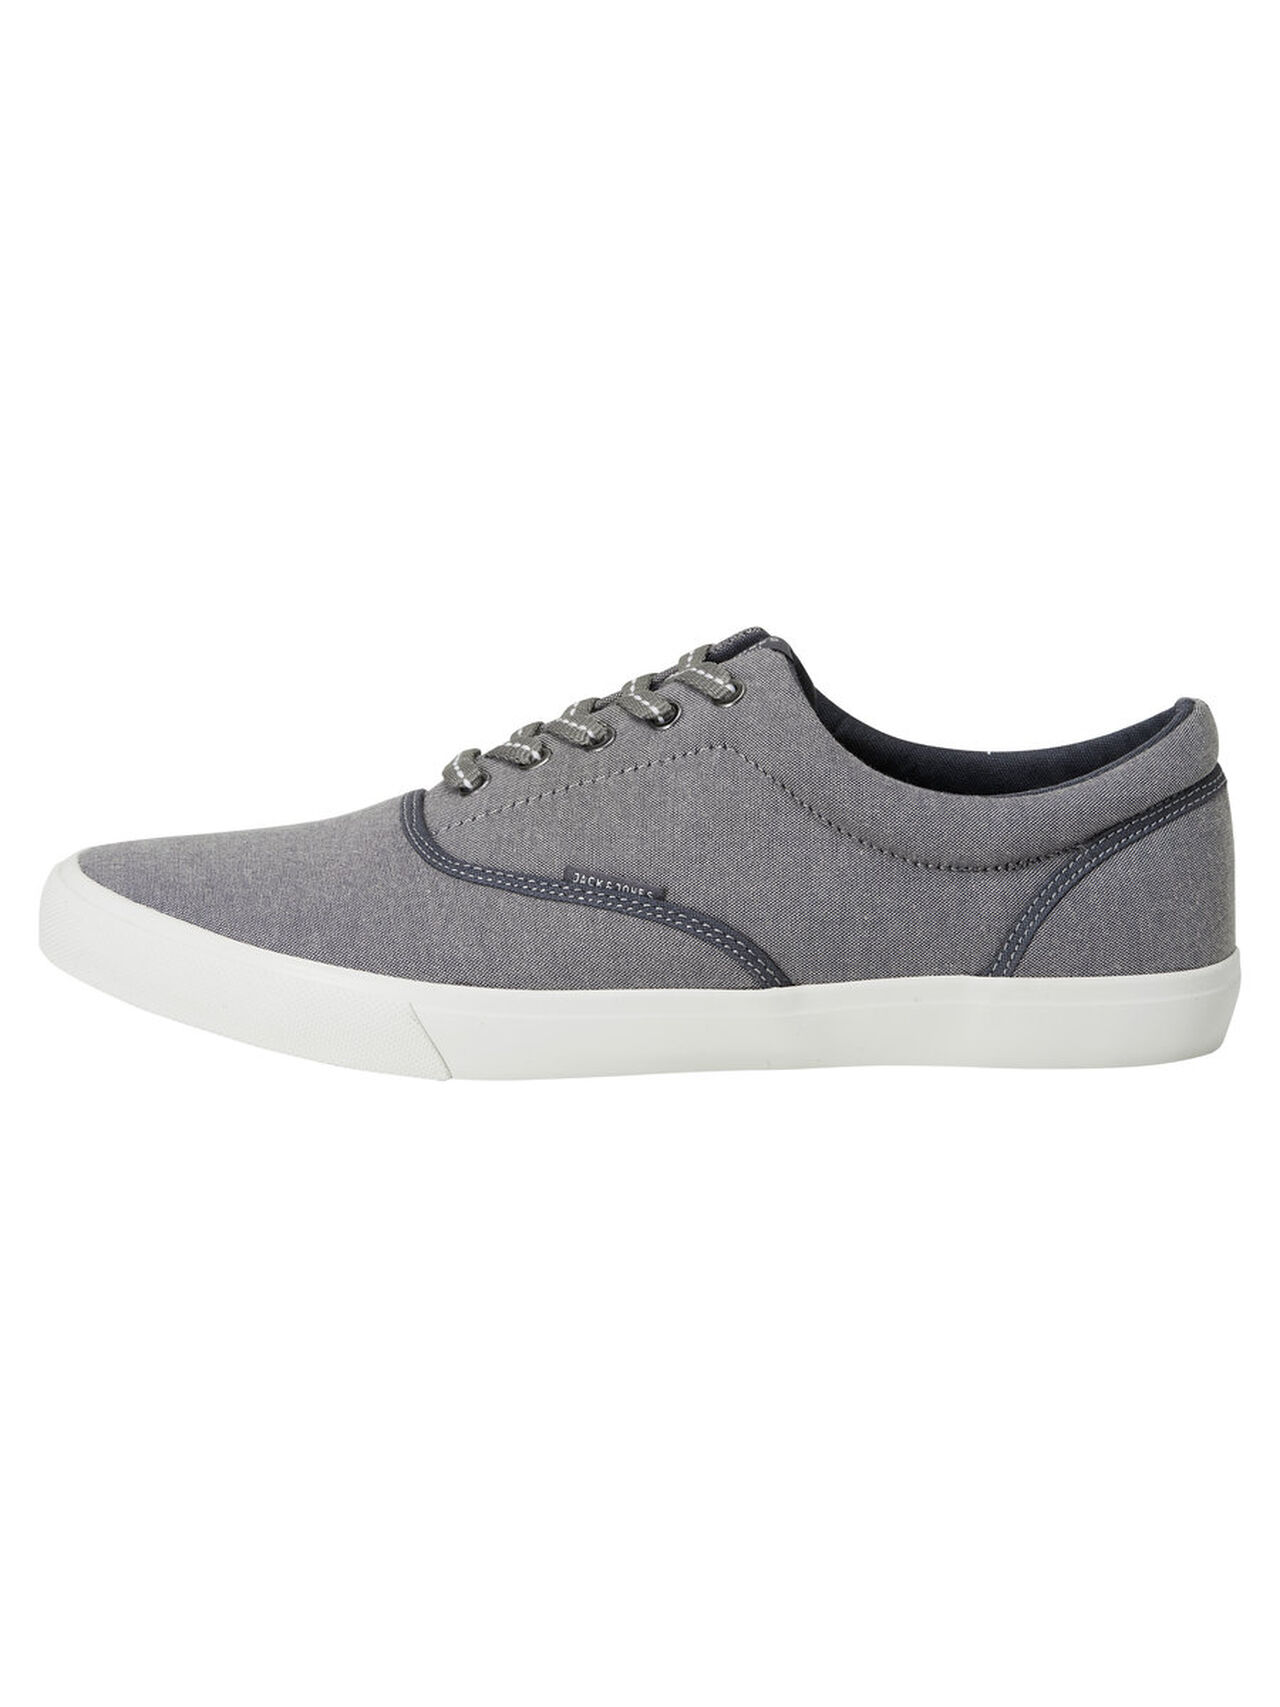 JACK & JONES Casual Sneakers Heren Grijs thumbnail